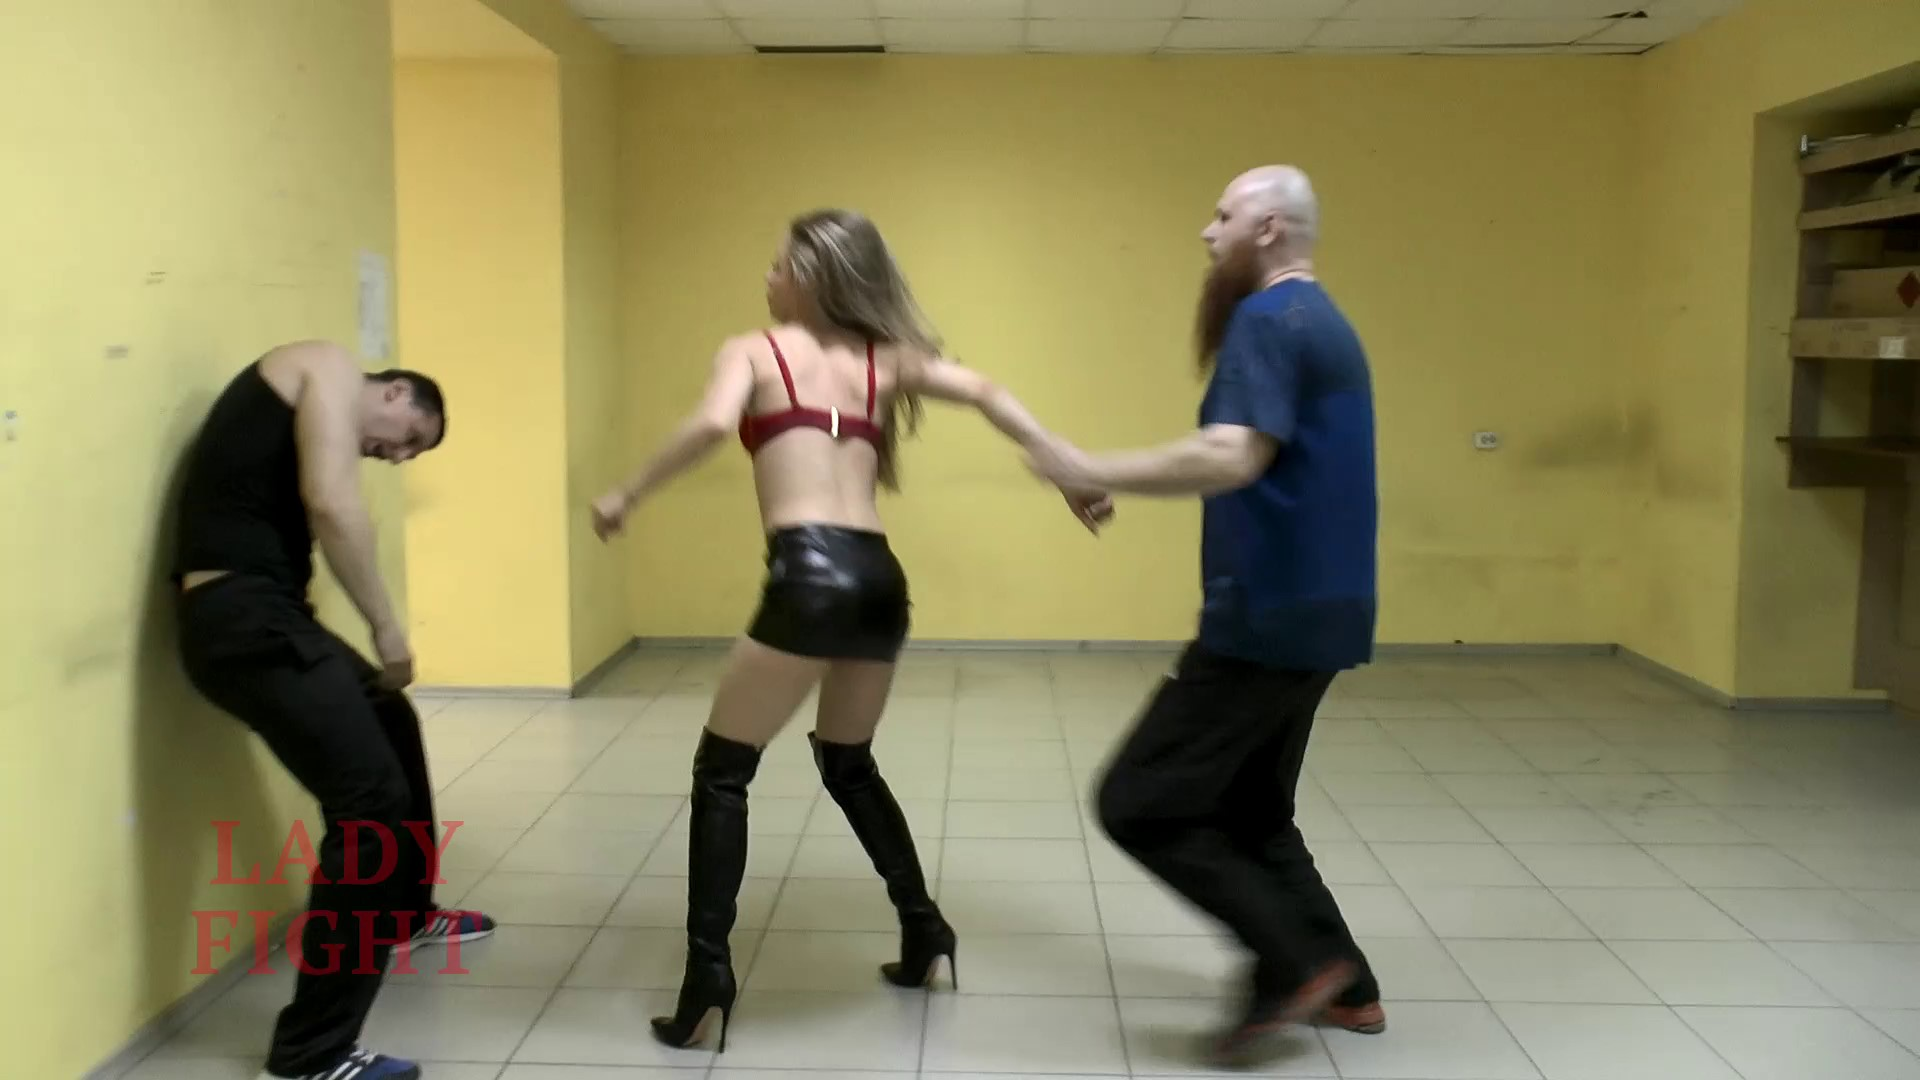 LADYFIGHT-Deadly-Wrestling-For-Lora-18